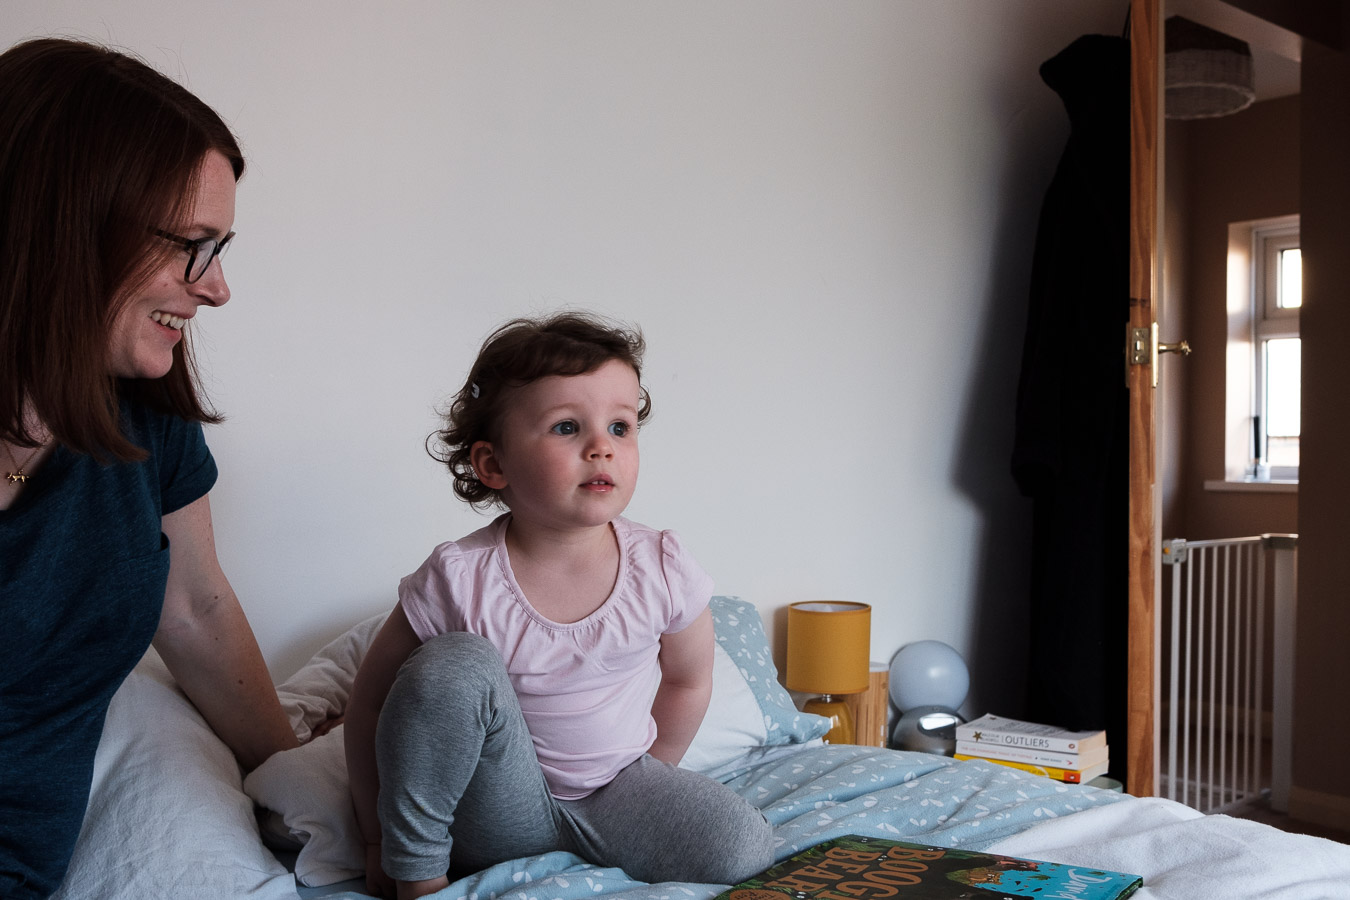 Daughter looks up from book her mum is reading to her in bedroom.